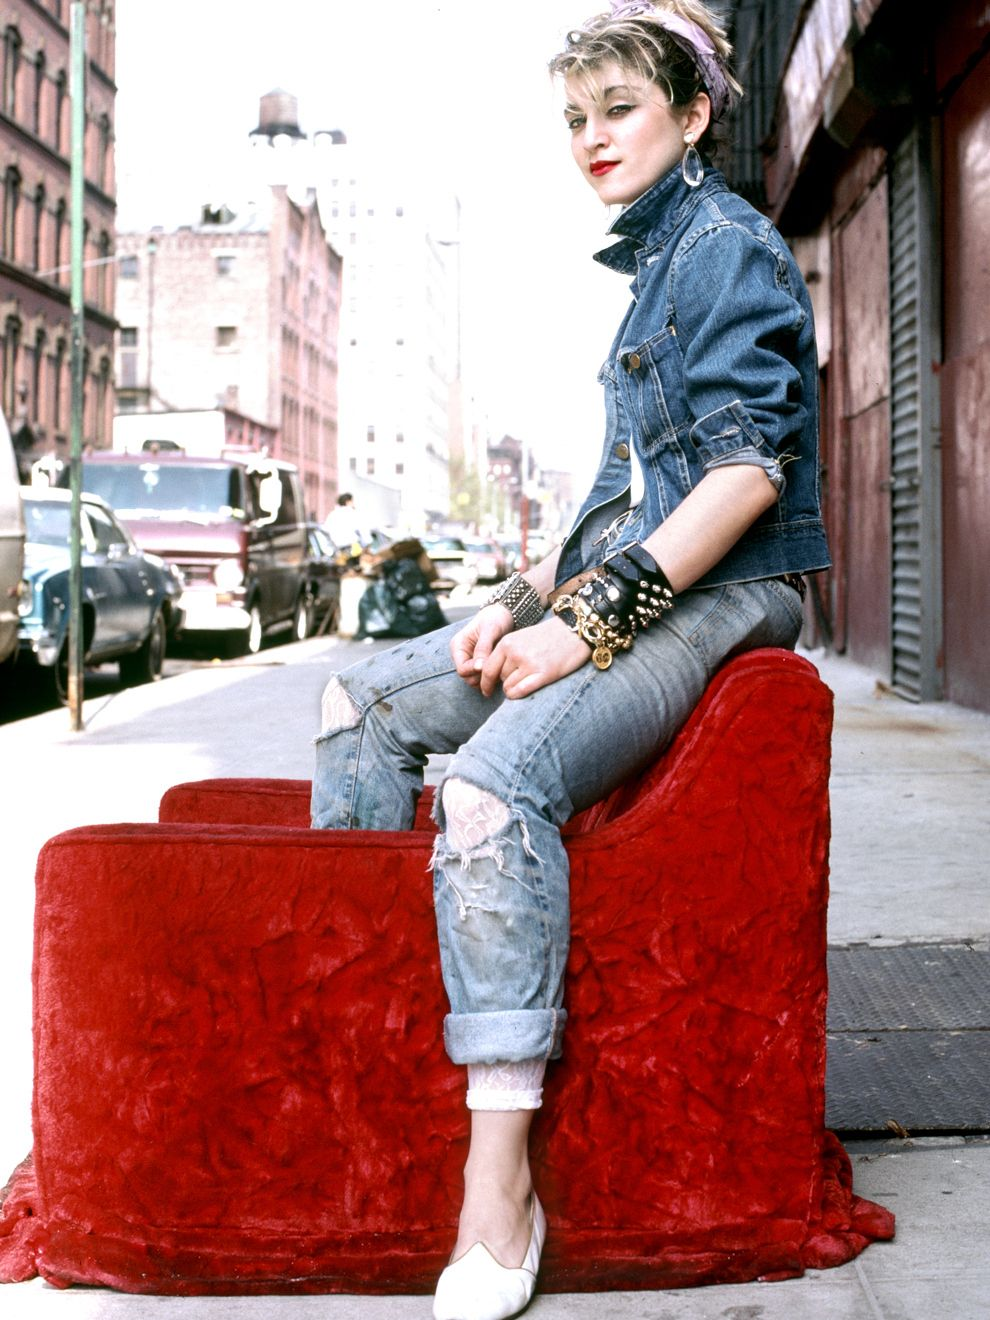 b65d05732f2 These Photos Of Madonna In Her Prime Are Unreal